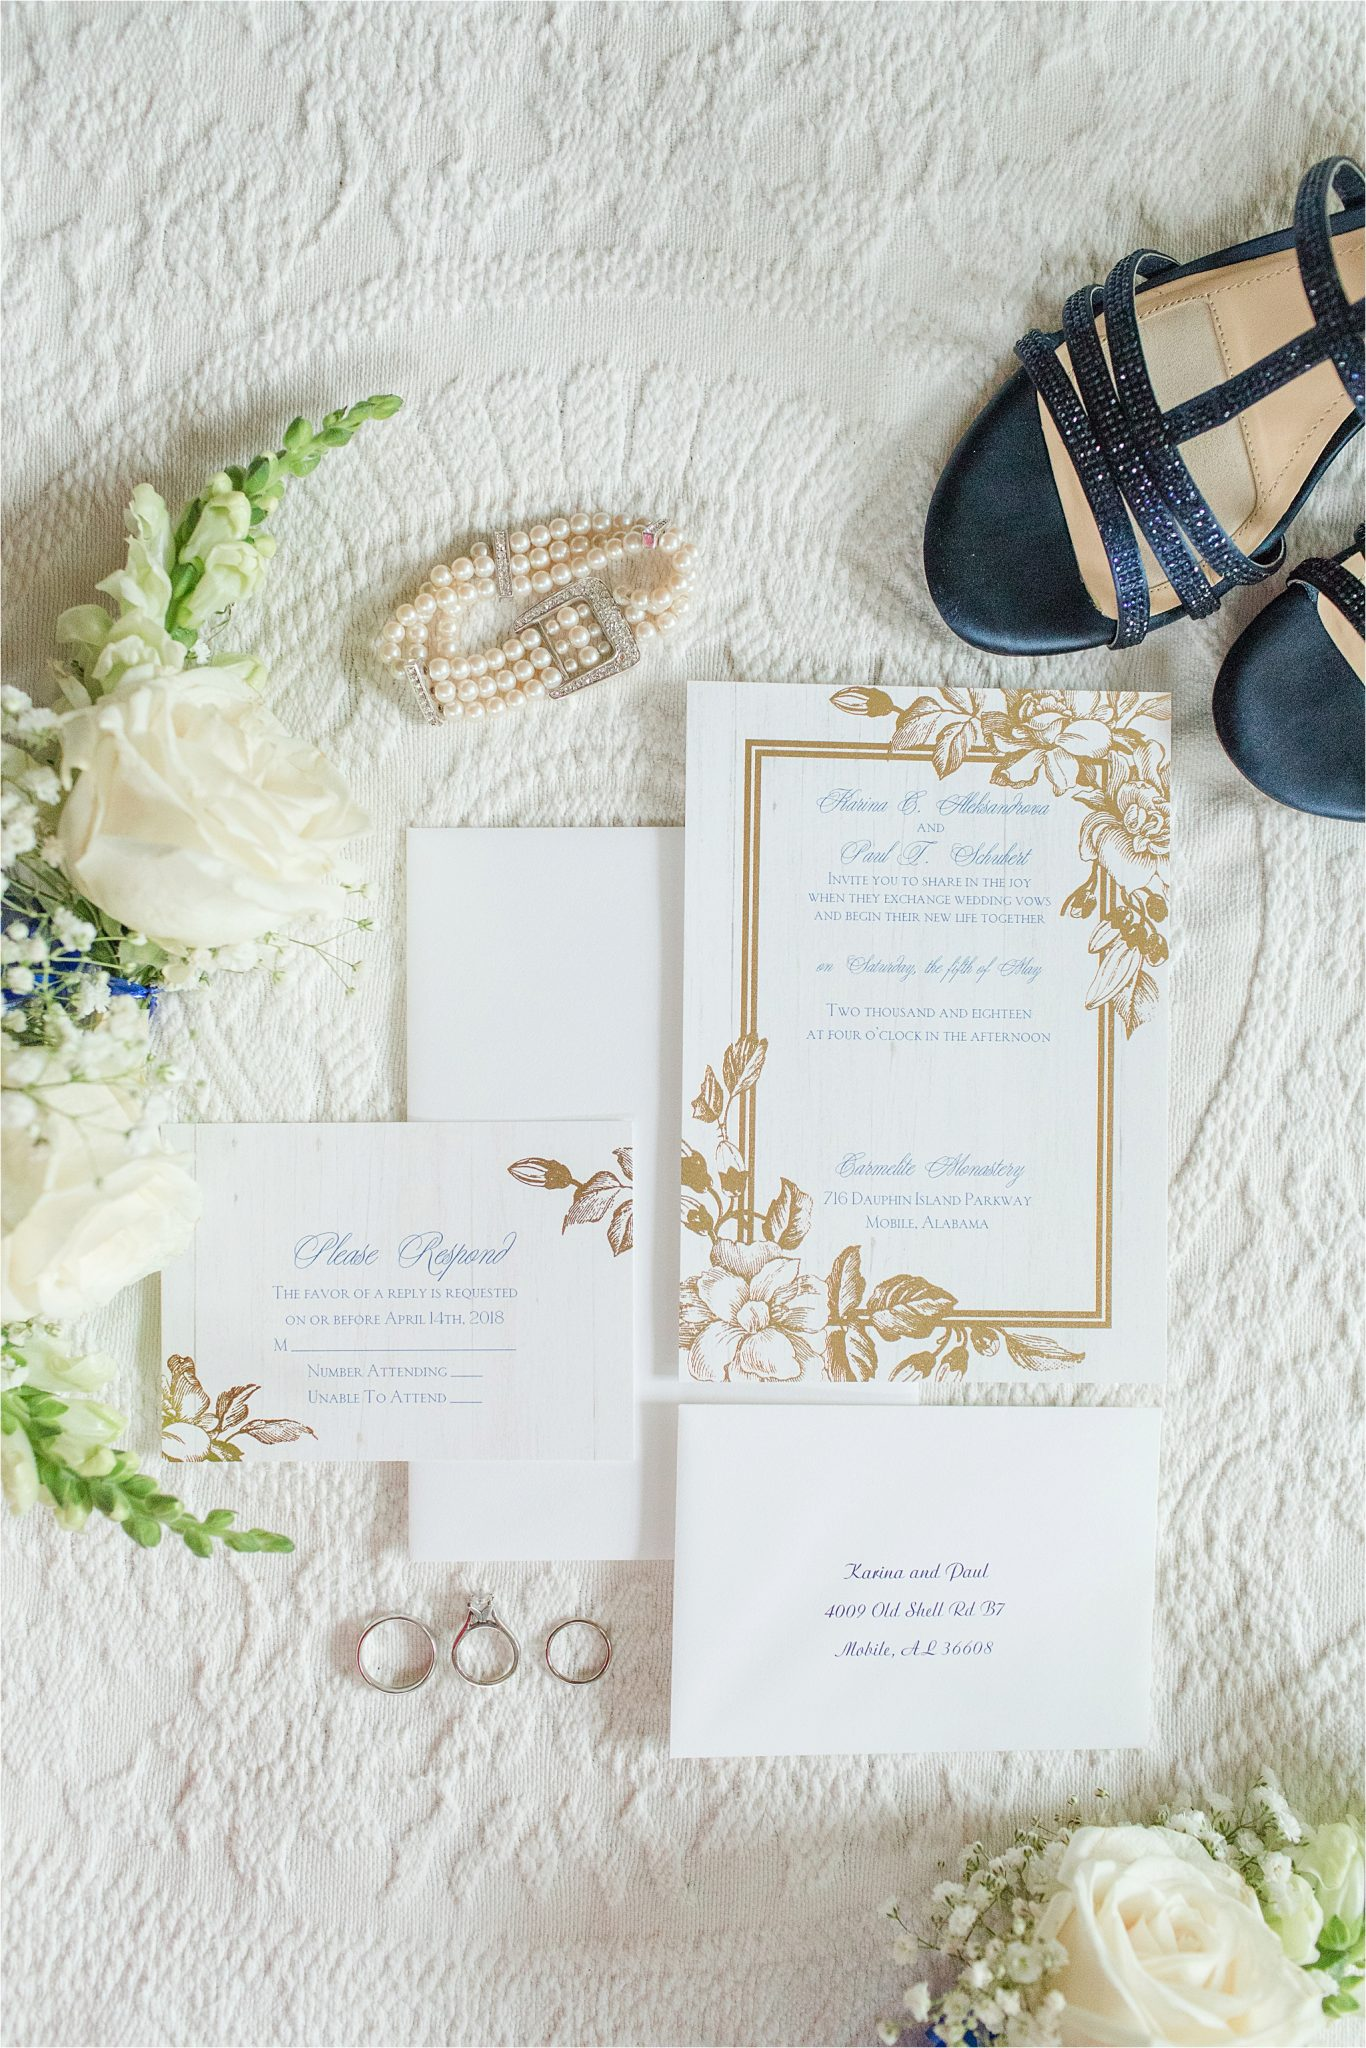 Gold accent-floral-invitaions-details-something blue-pearl bridal jewelry-white rose details